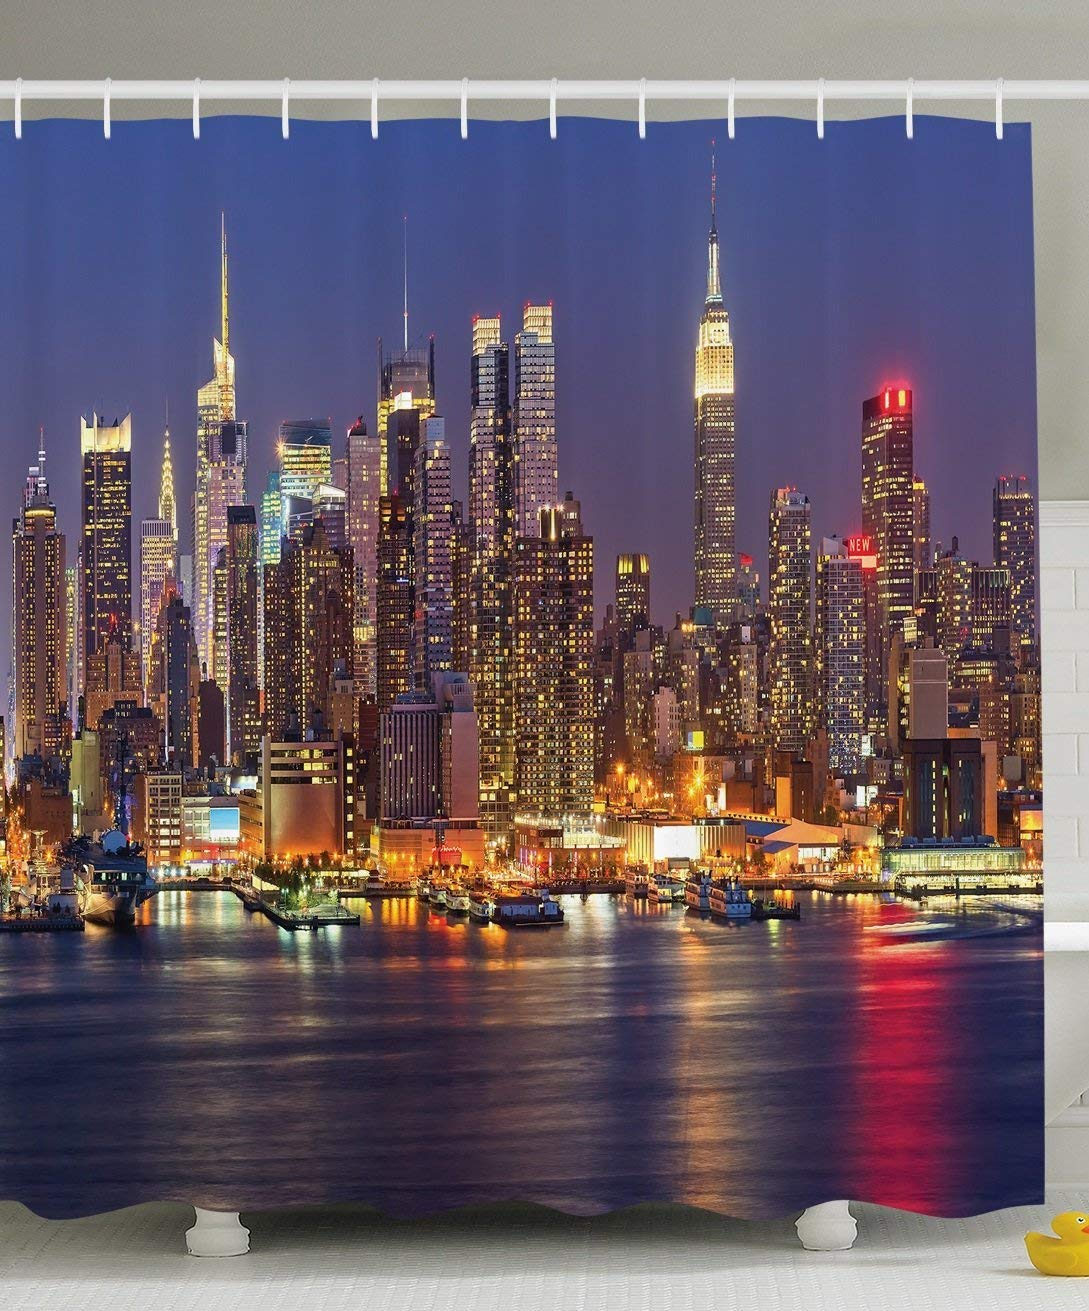 Cityscape Shower Curtain NYC New York City Night Skyline Scenery View Artwork Picture Prints Polyester Fabric